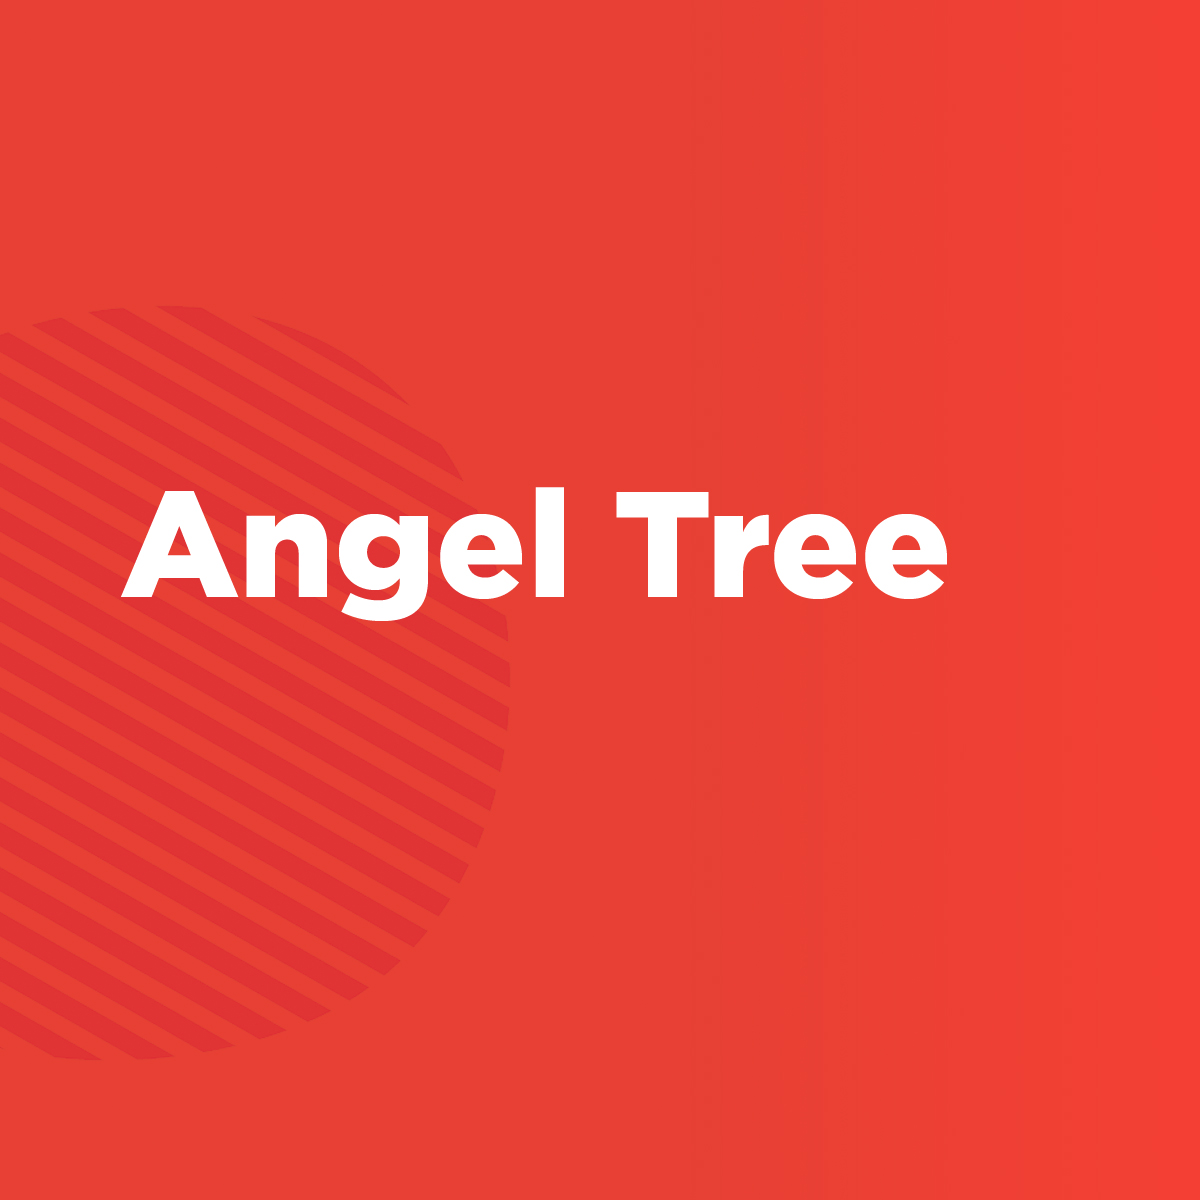 Thanksgiving Angel Tree